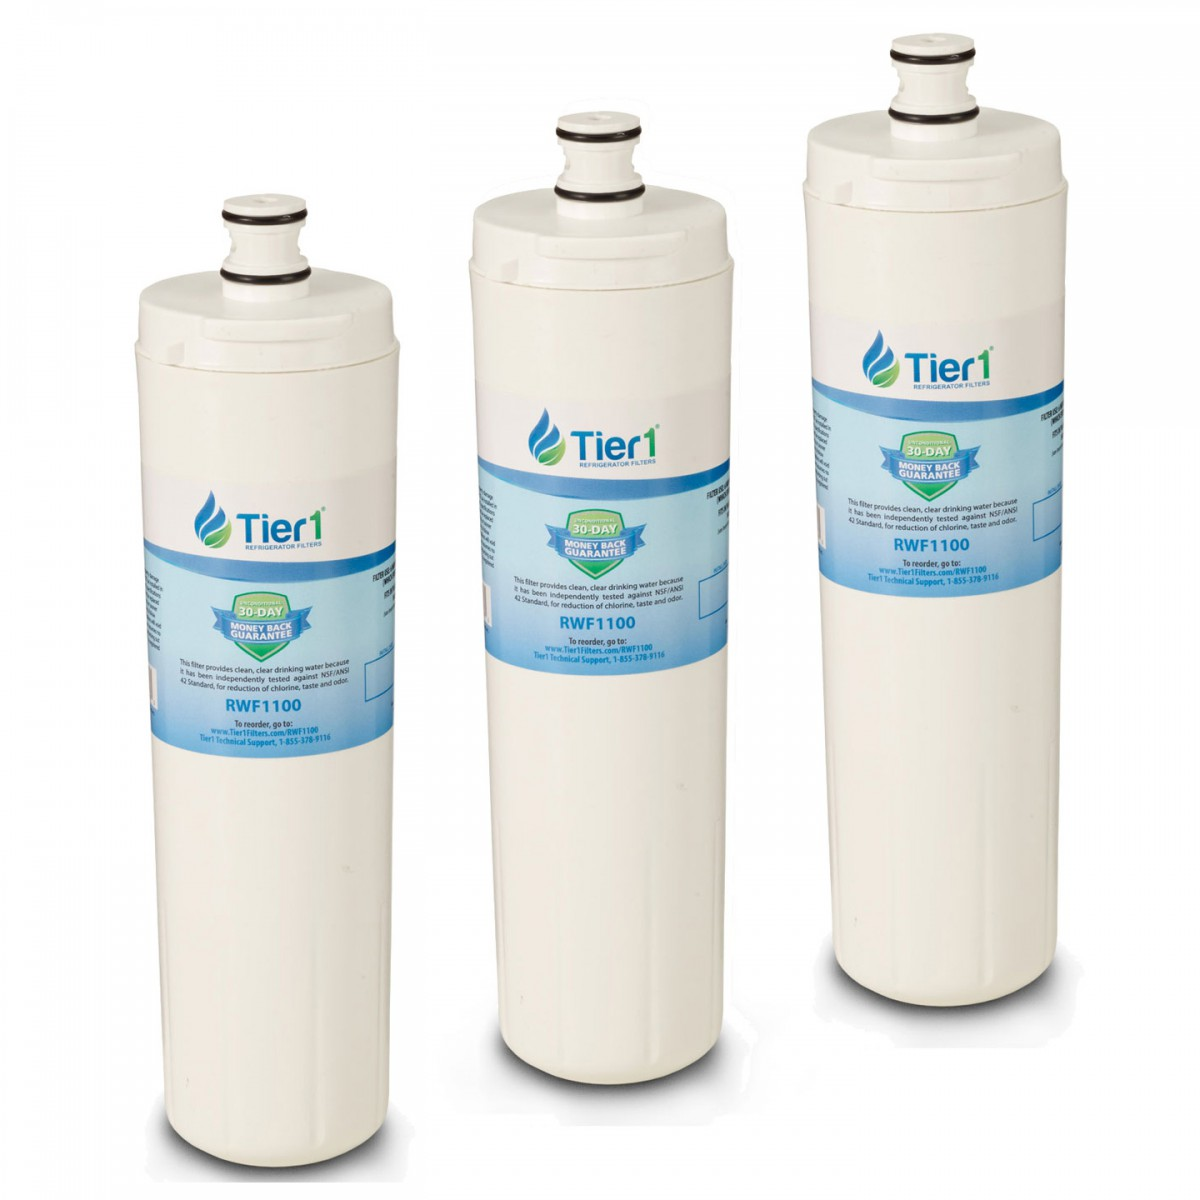 Cs 51 Comparable Refrigerator Water Filter Replacement By Tier1 3 Pack